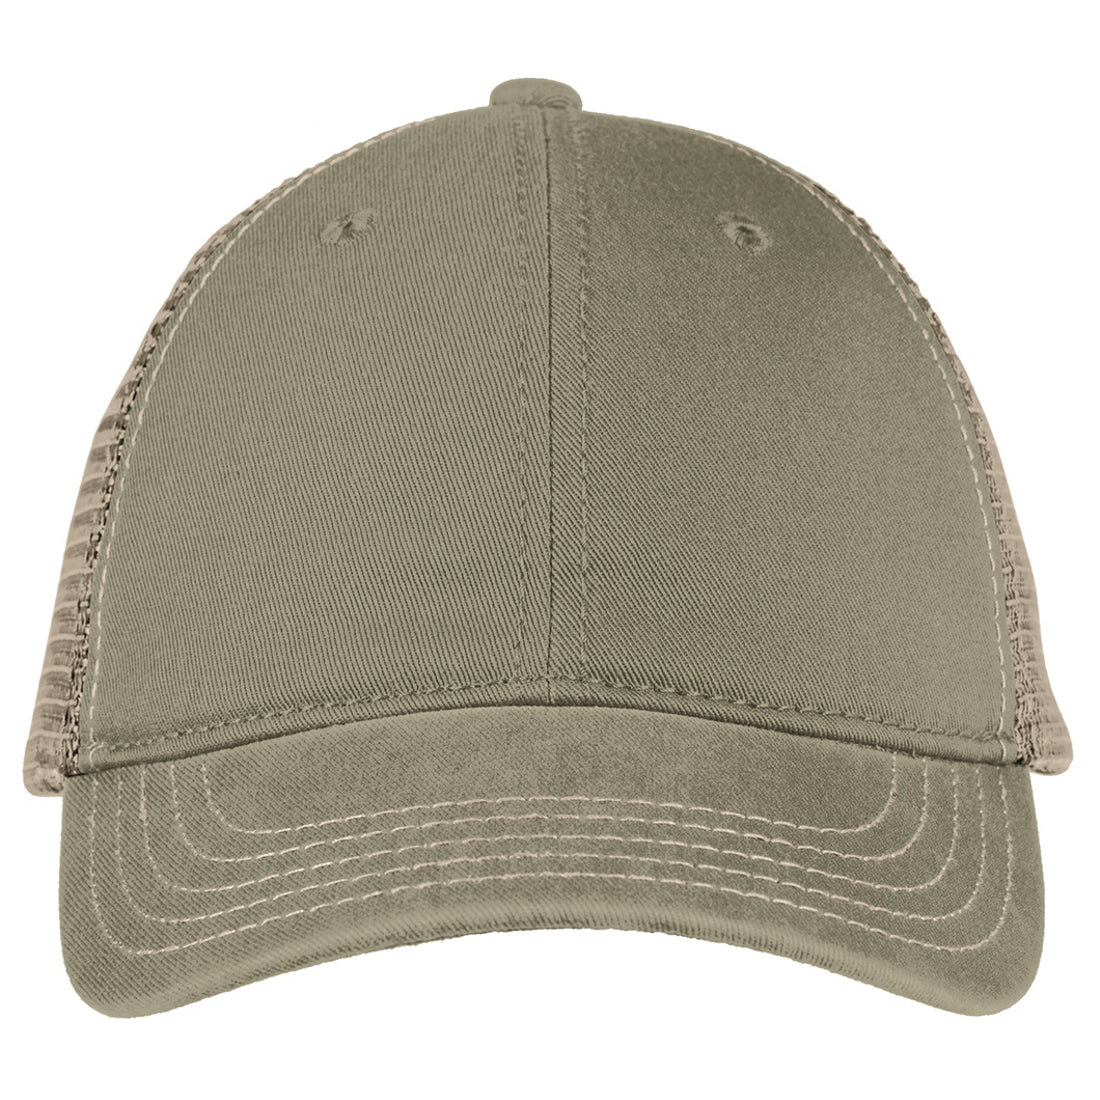 Men's Super Soft Mesh Back Cap - Olive/ Khaki